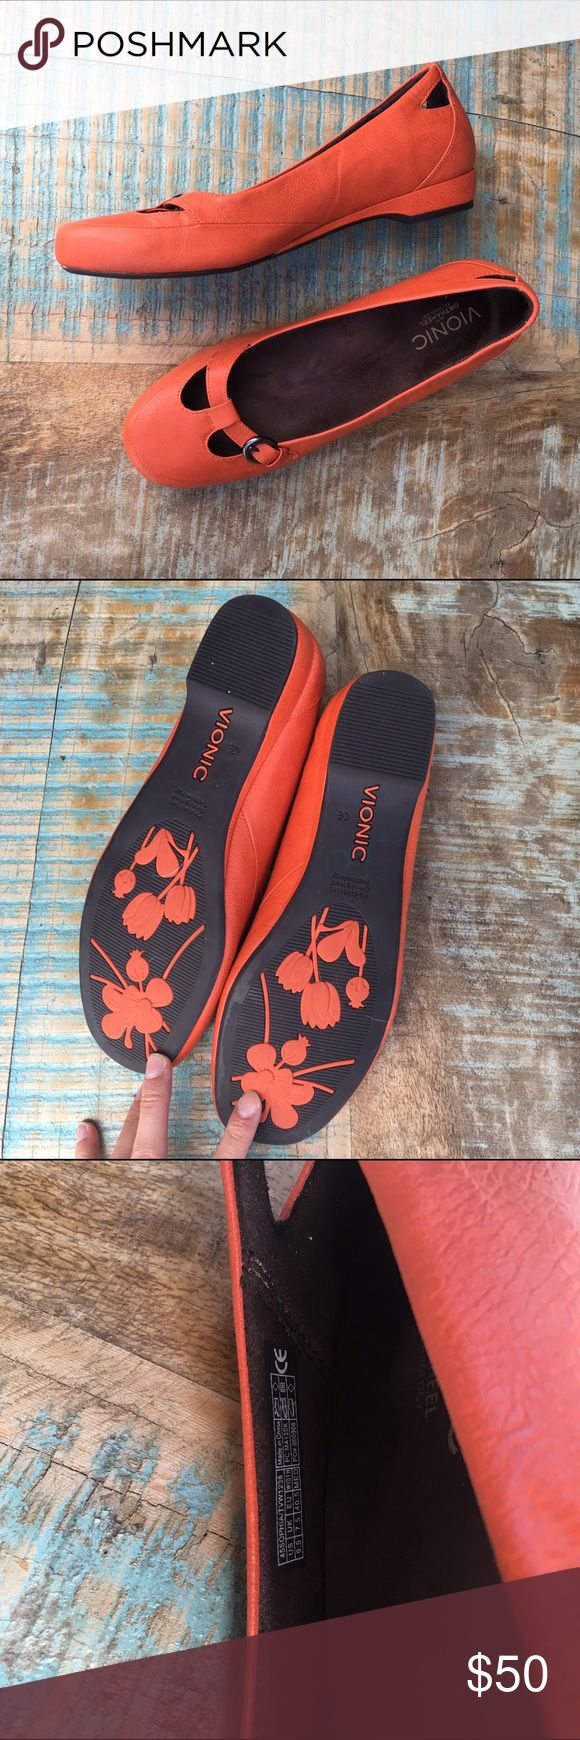 Vionic Orthaheel Mary Janes Supportive! Made for plantar fasciitis, but is also excellent for anyone who likes/needs arch support. I wear this brand because my flat feet causes knee problems. These are just too big for me. Fit like a 10 in my opinion. Just a few dings in front otherwise excellent shape. Perfect for that outfit pop! Vionic Shoes Flats & Loafers